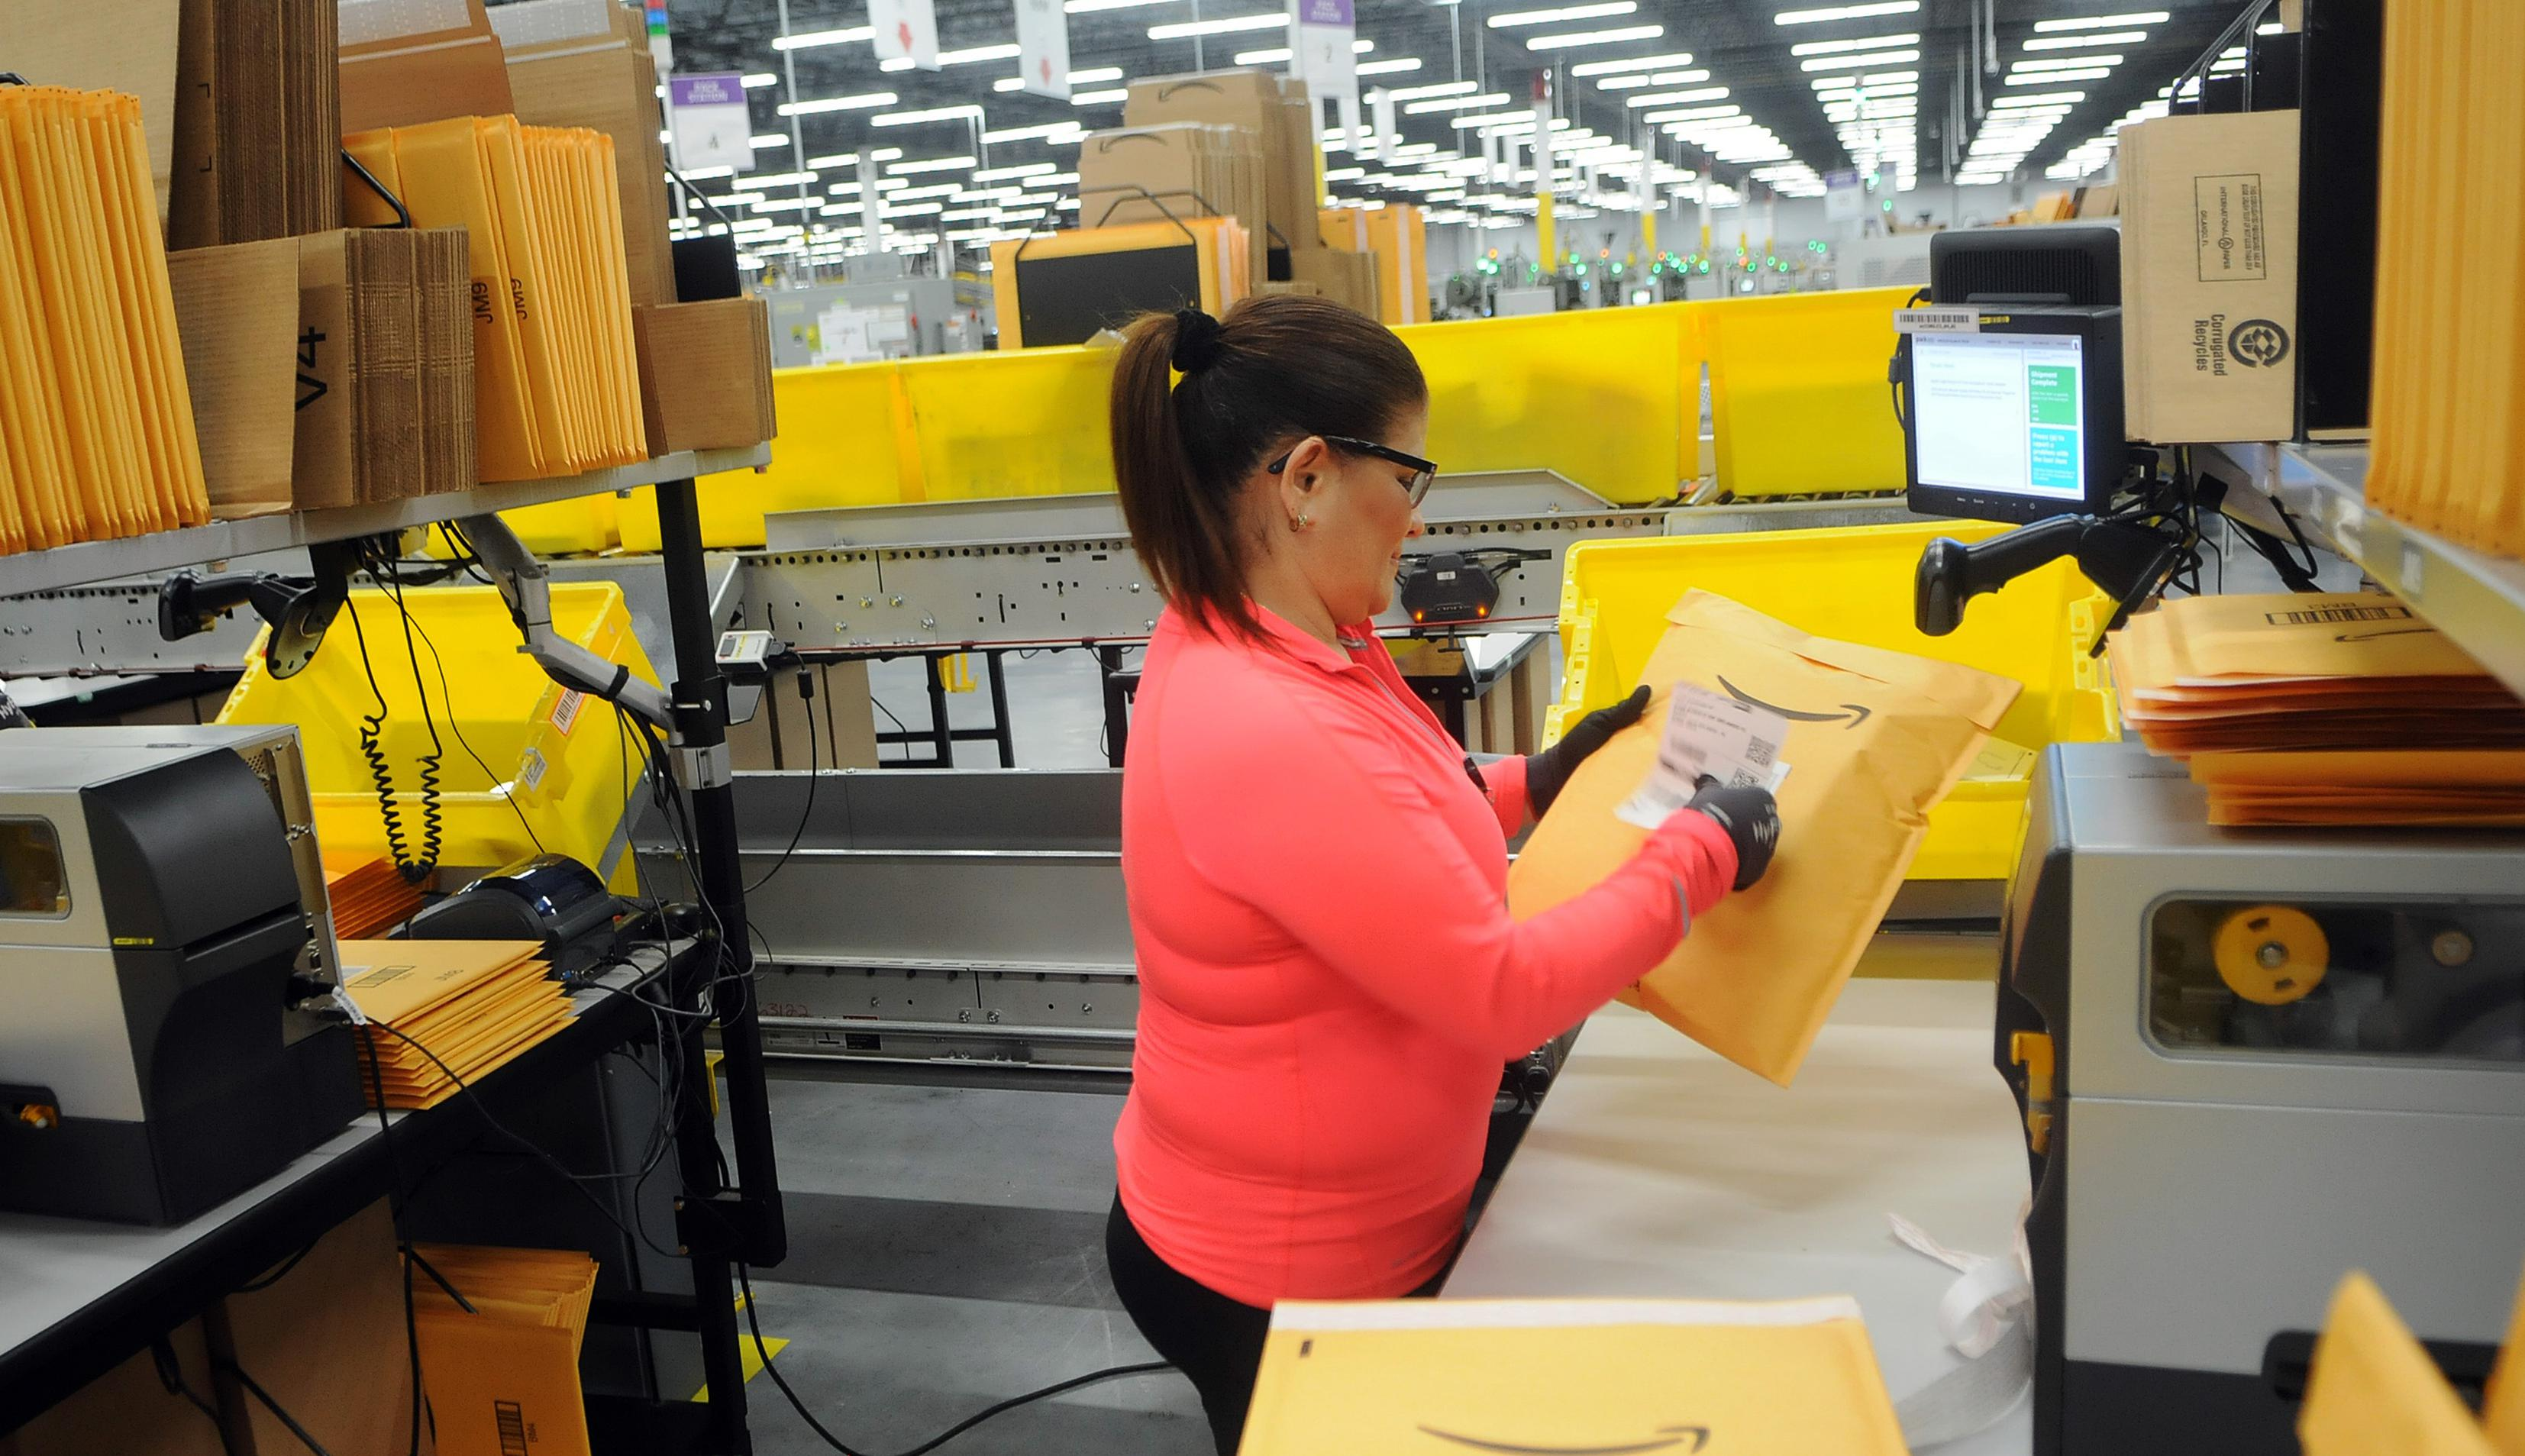 Amazon's newest robotics distribution center holds grand opening in Orlando